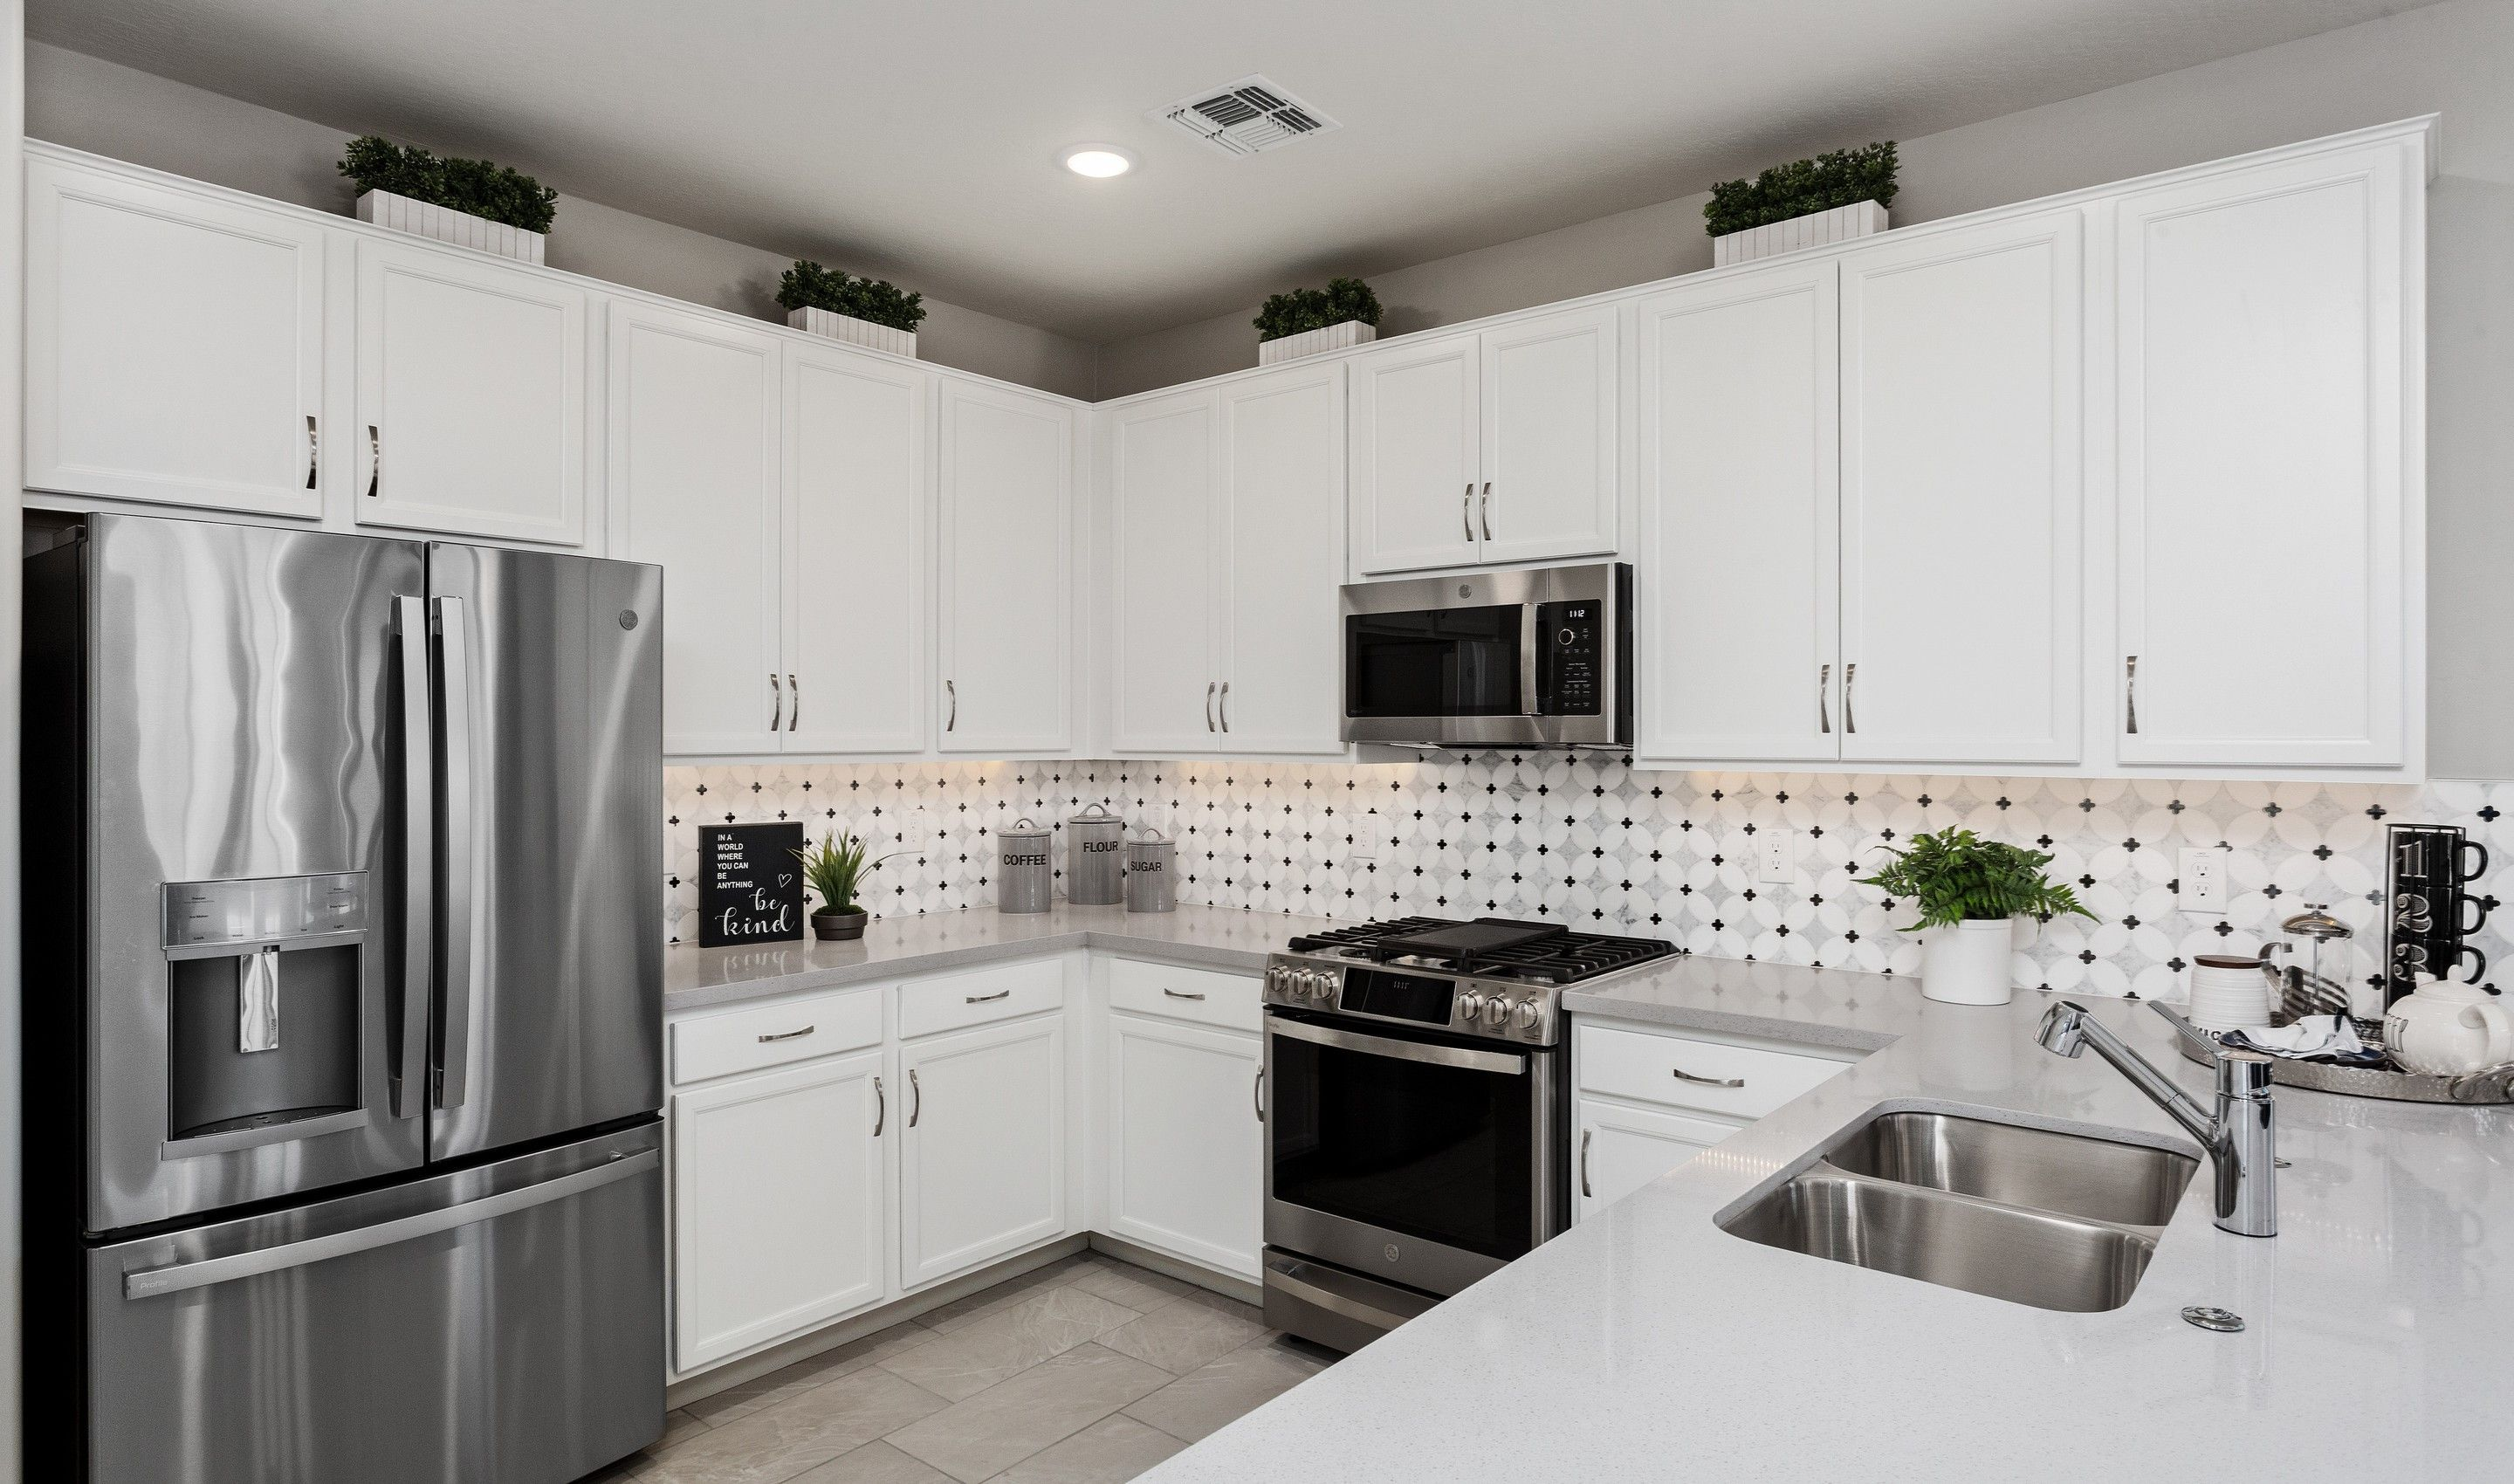 Kitchen featured in the Saguaro By K. Hovnanian's® Four Seasons in Phoenix-Mesa, AZ